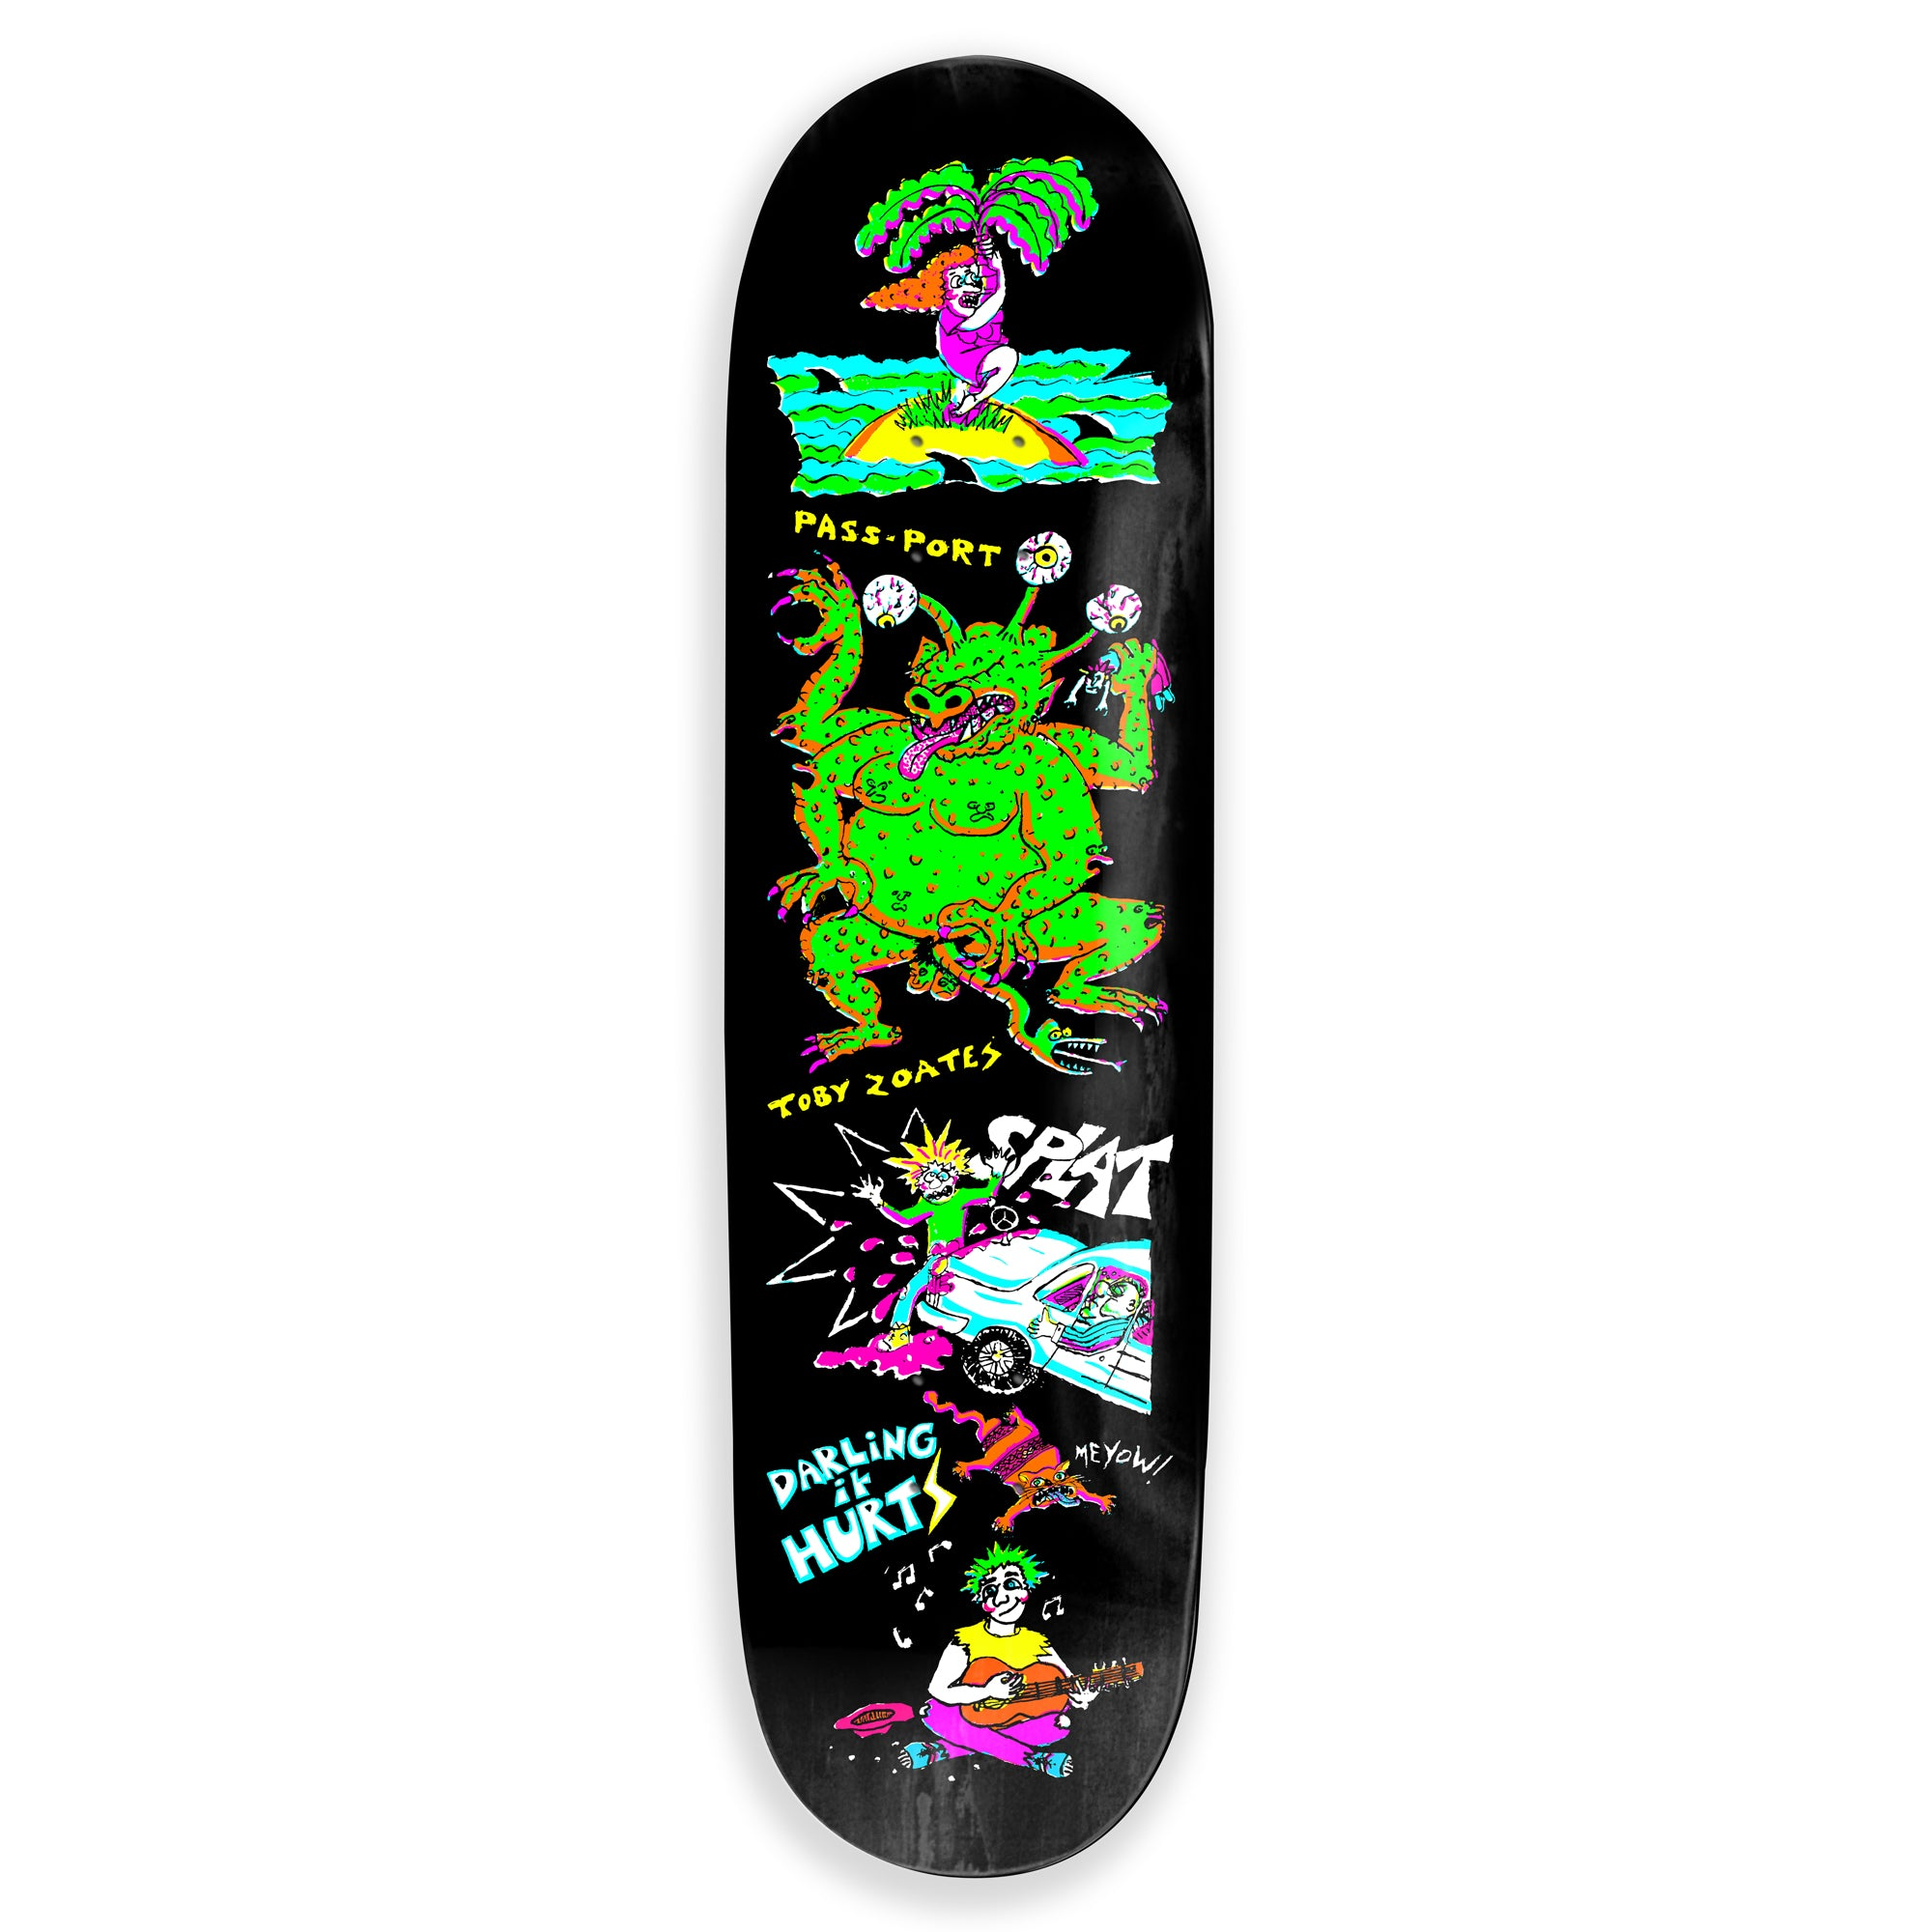 Pass Port - Toby Zoates - Darling deck - 8.25""